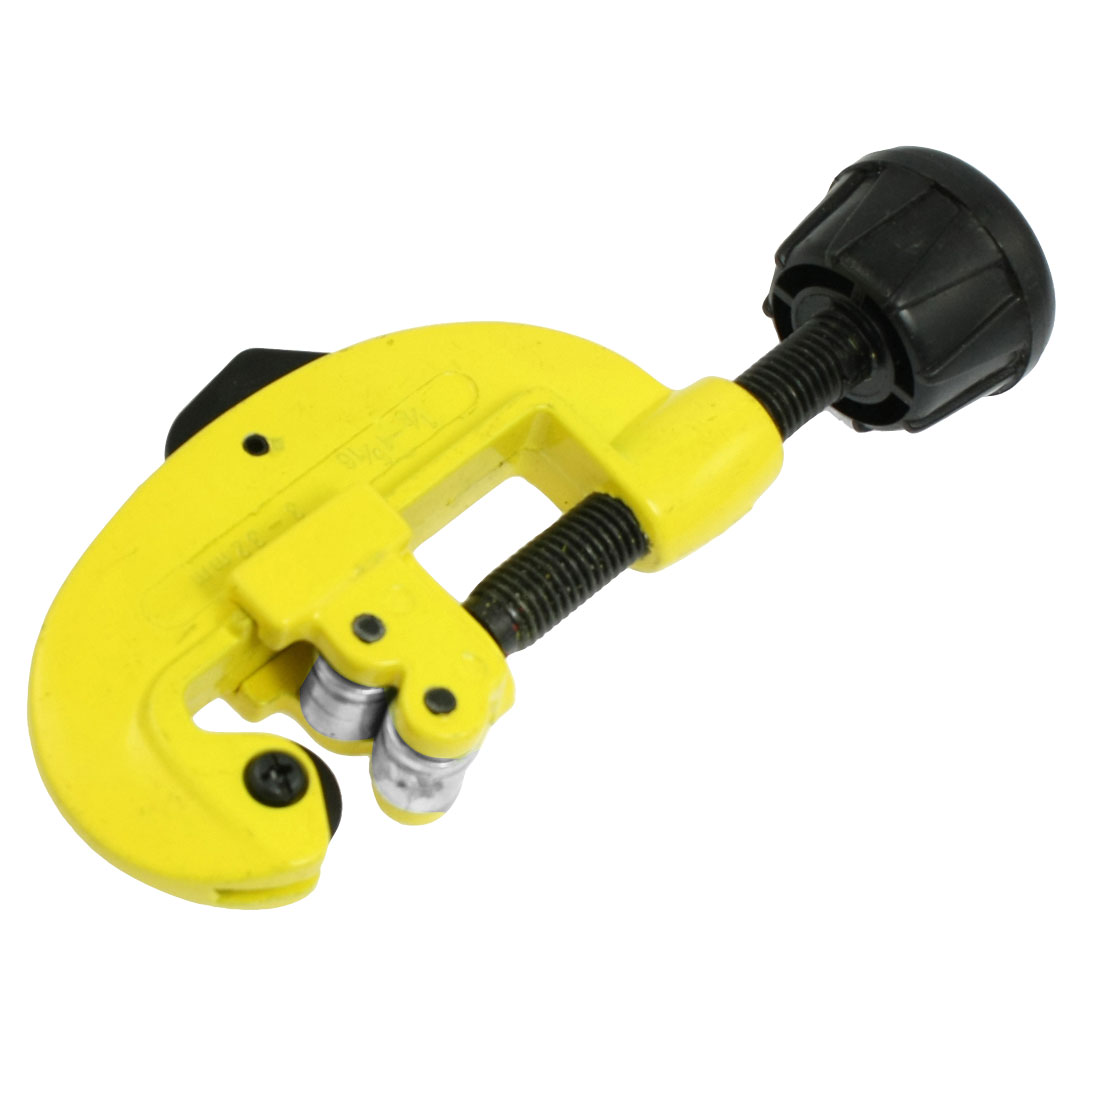 "1 8""-1 5 16"" Cutting Swivel Knob Tubing Pipe Cutter Hand Tool Yellow 5.5"" by Unique-Bargains"